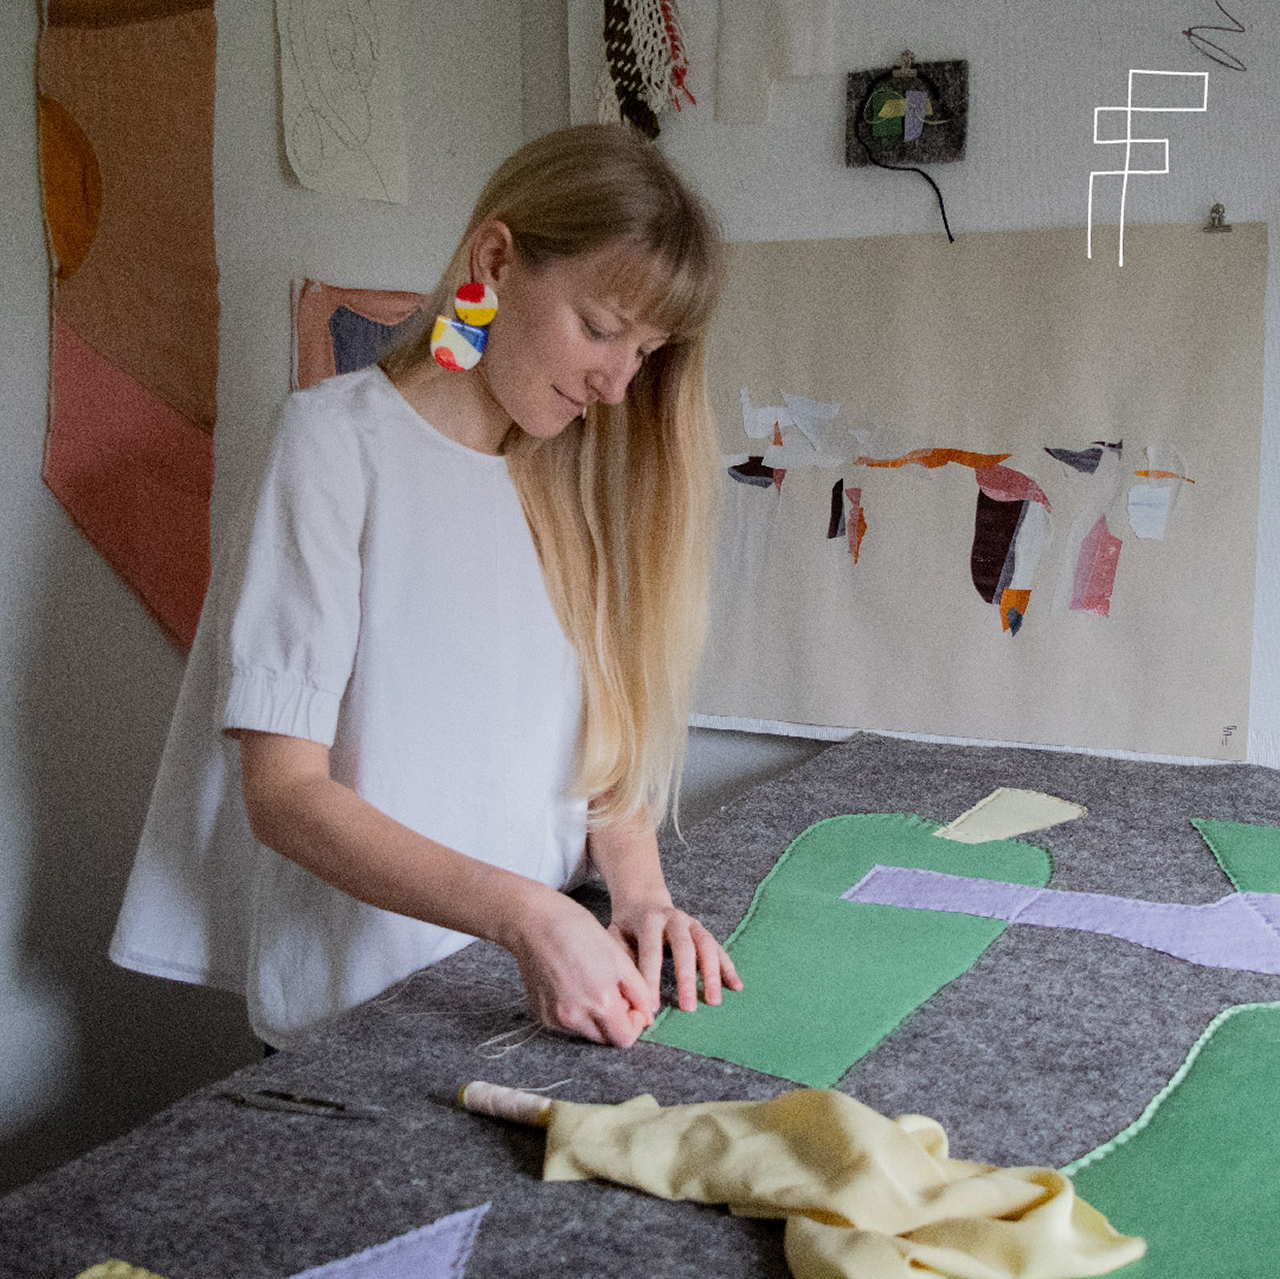 blonde woman in white shirt pinning a quilt on a table